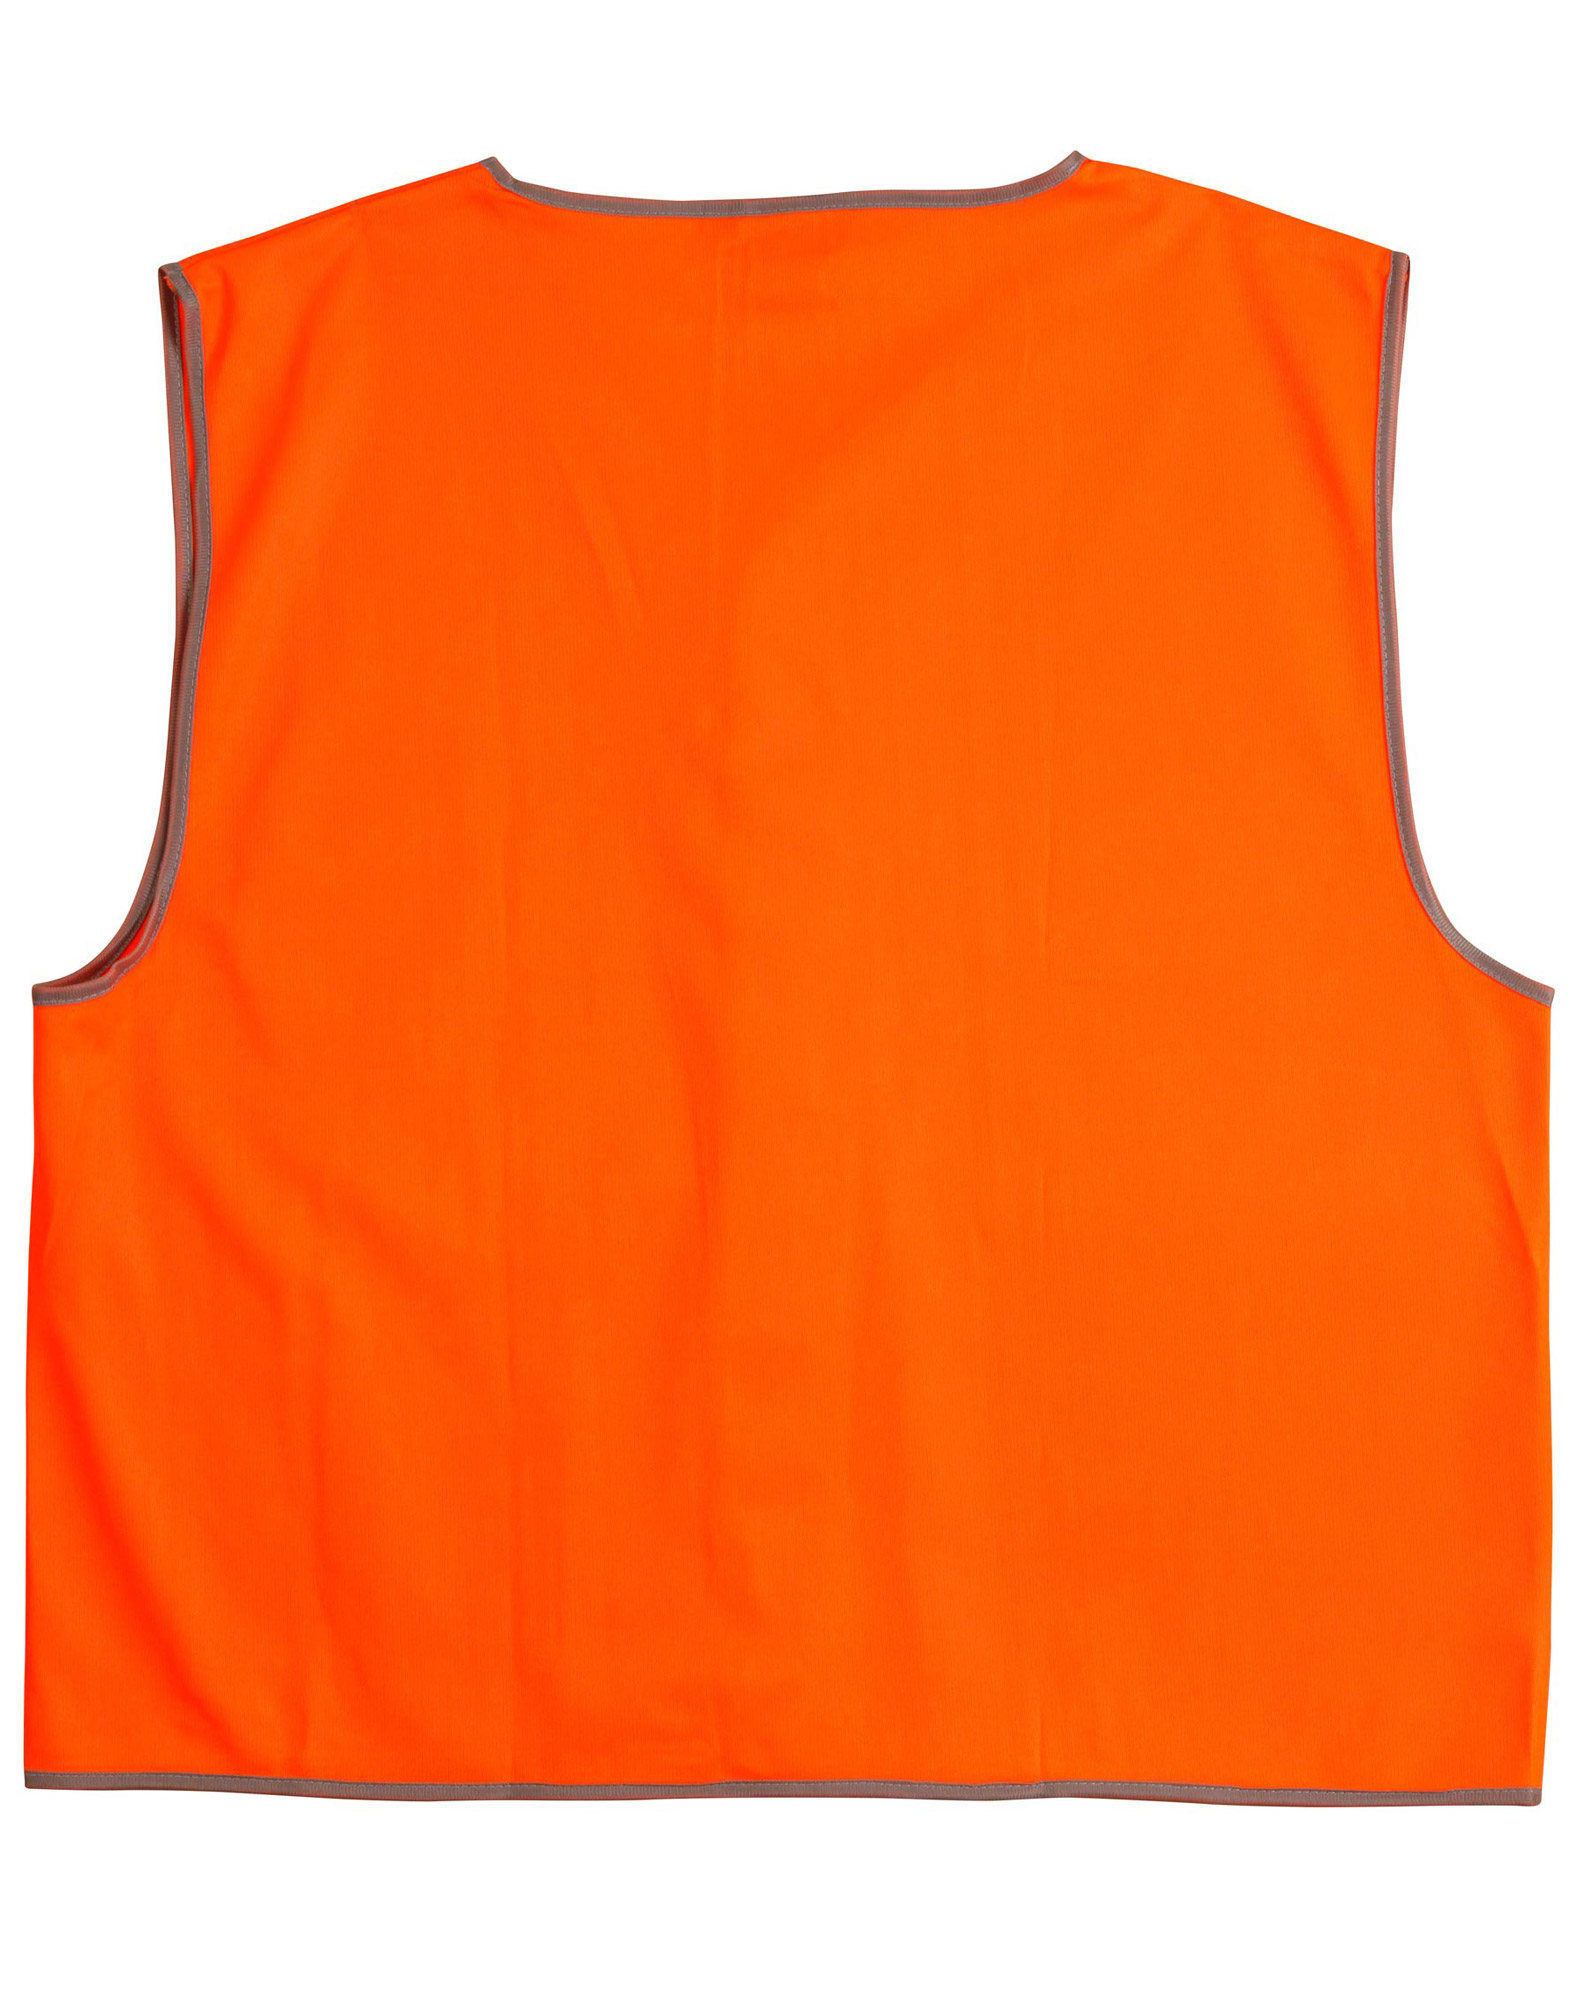 http://ws-imgs.s3.amazonaws.com/WORKWEAR/SW02K_Orange_Back_l.jpg